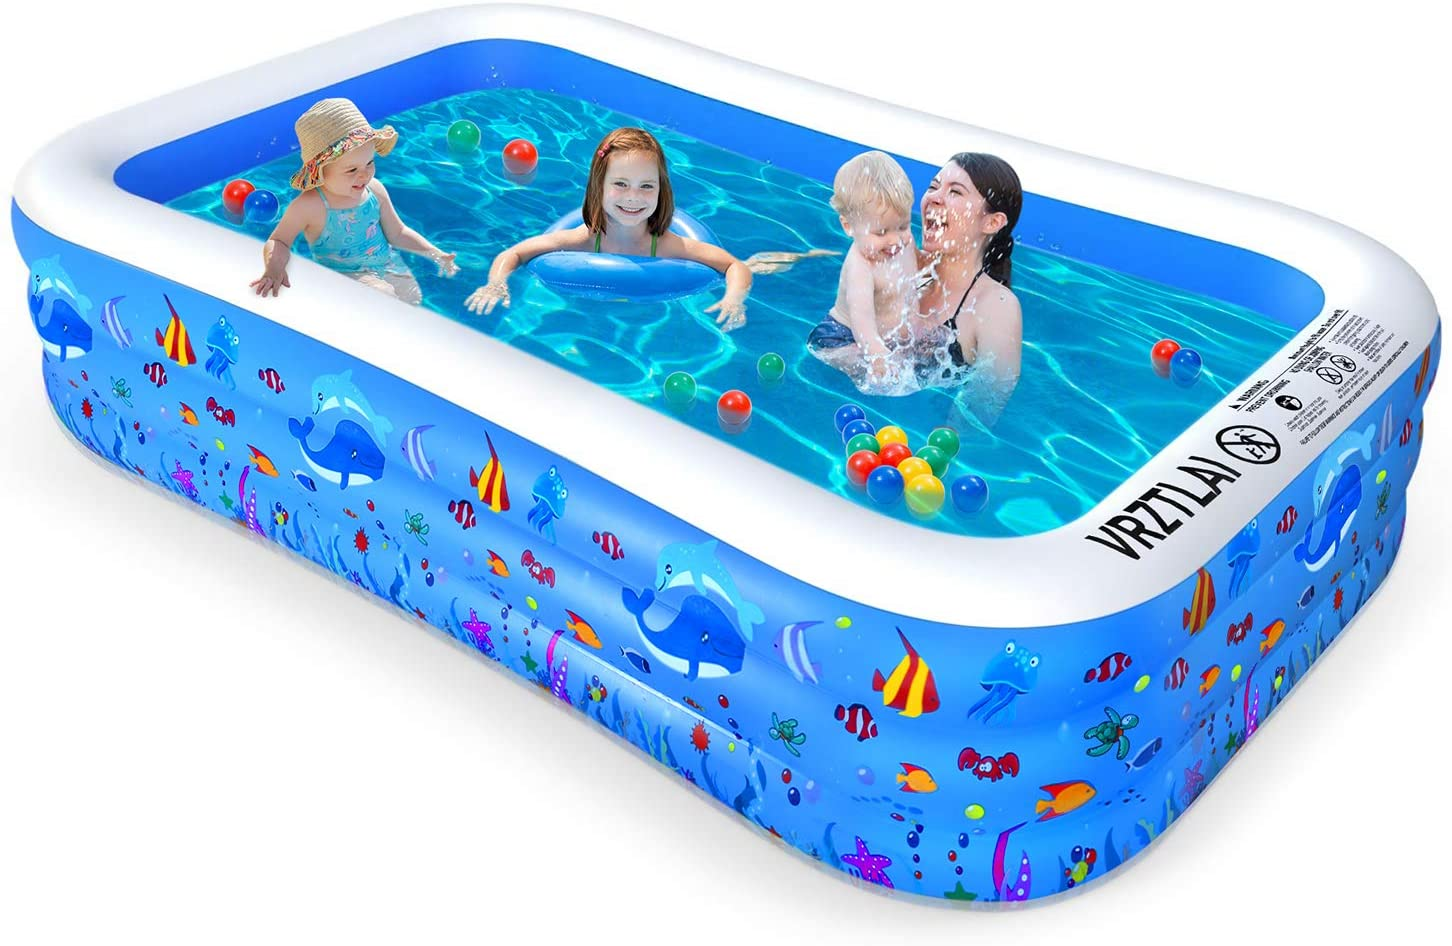 Children Inflatable Swimming Pool Family Lounging Swimming Pool for Kids Adults Babies Toddlers Outdoor Garden Backyard Kiddie Pools Outdoor Toy Pool Baby Play Pool 4 Layer